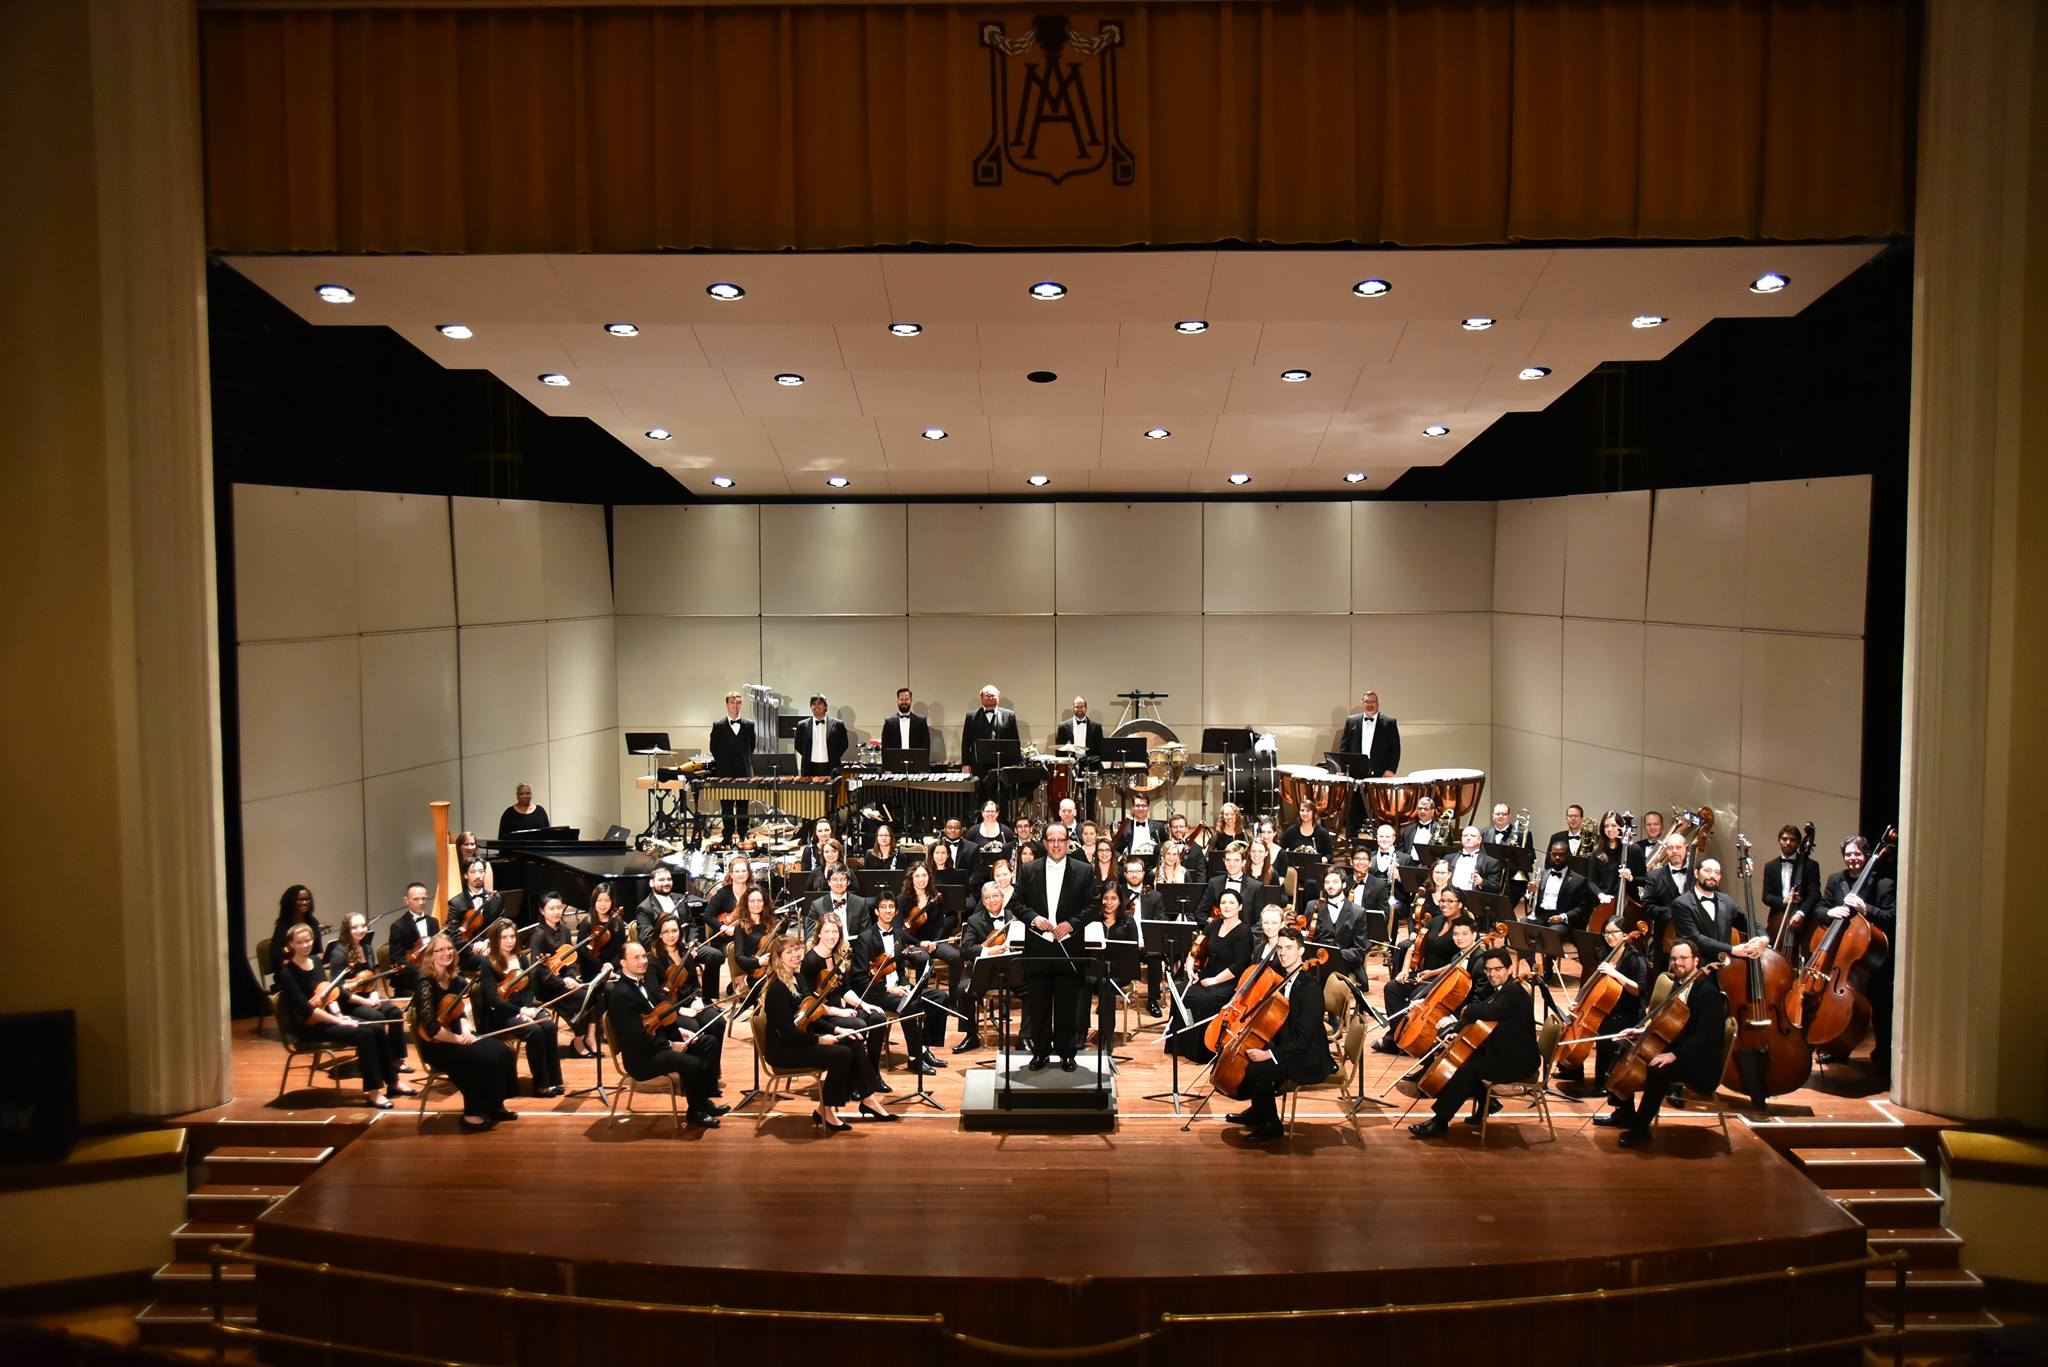 Opening Night – Spotlight on the Orchestra